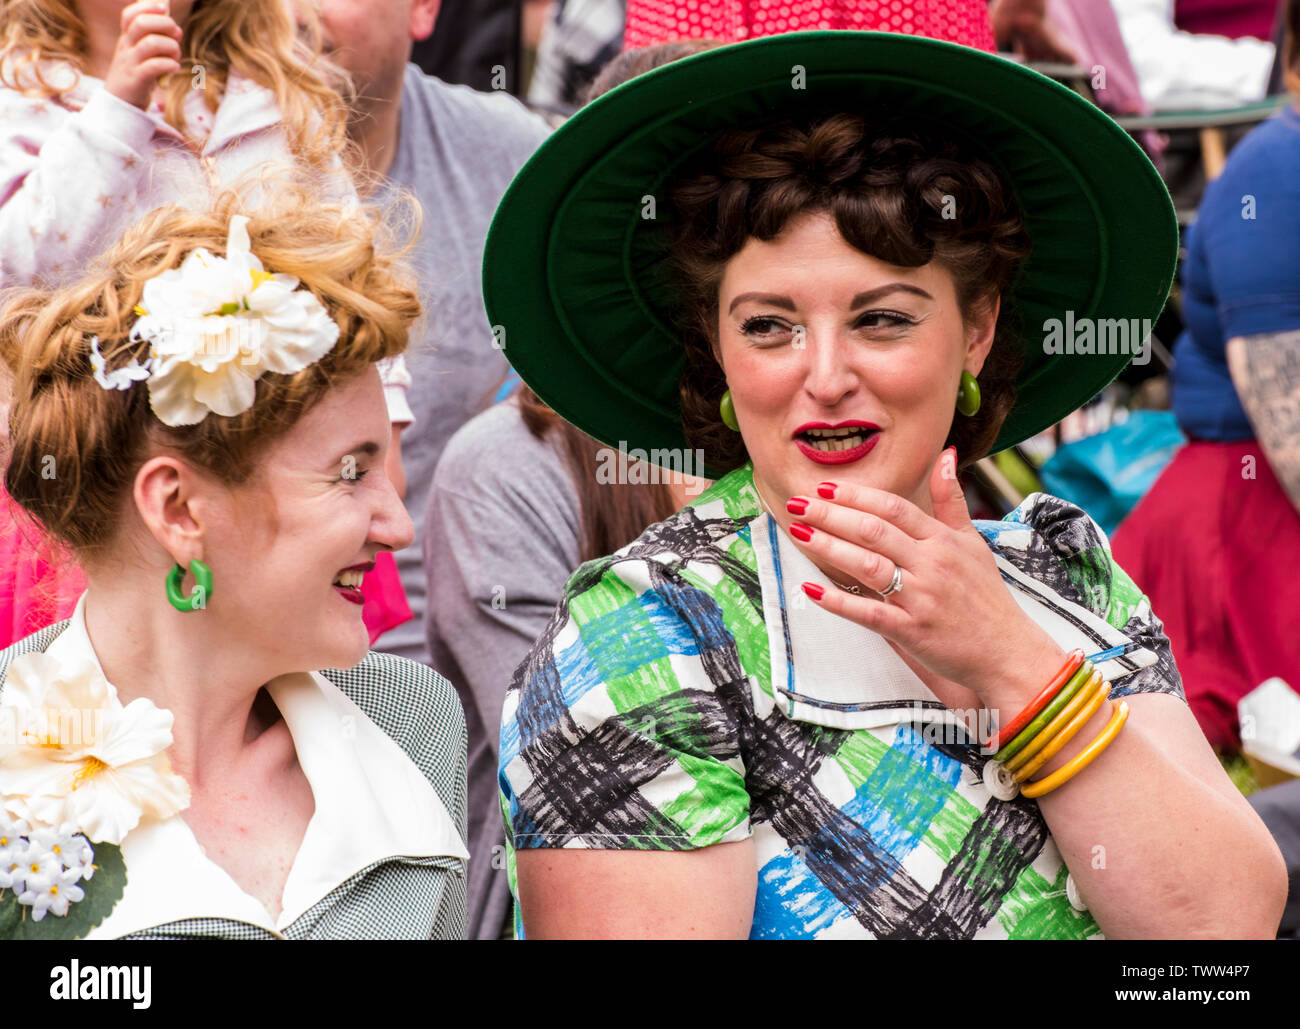 Women wearing 1940s style clothing in Valley Gardens on 1940s Day, Harrogate, England, UK, 23rd June 2019. Stock Photo